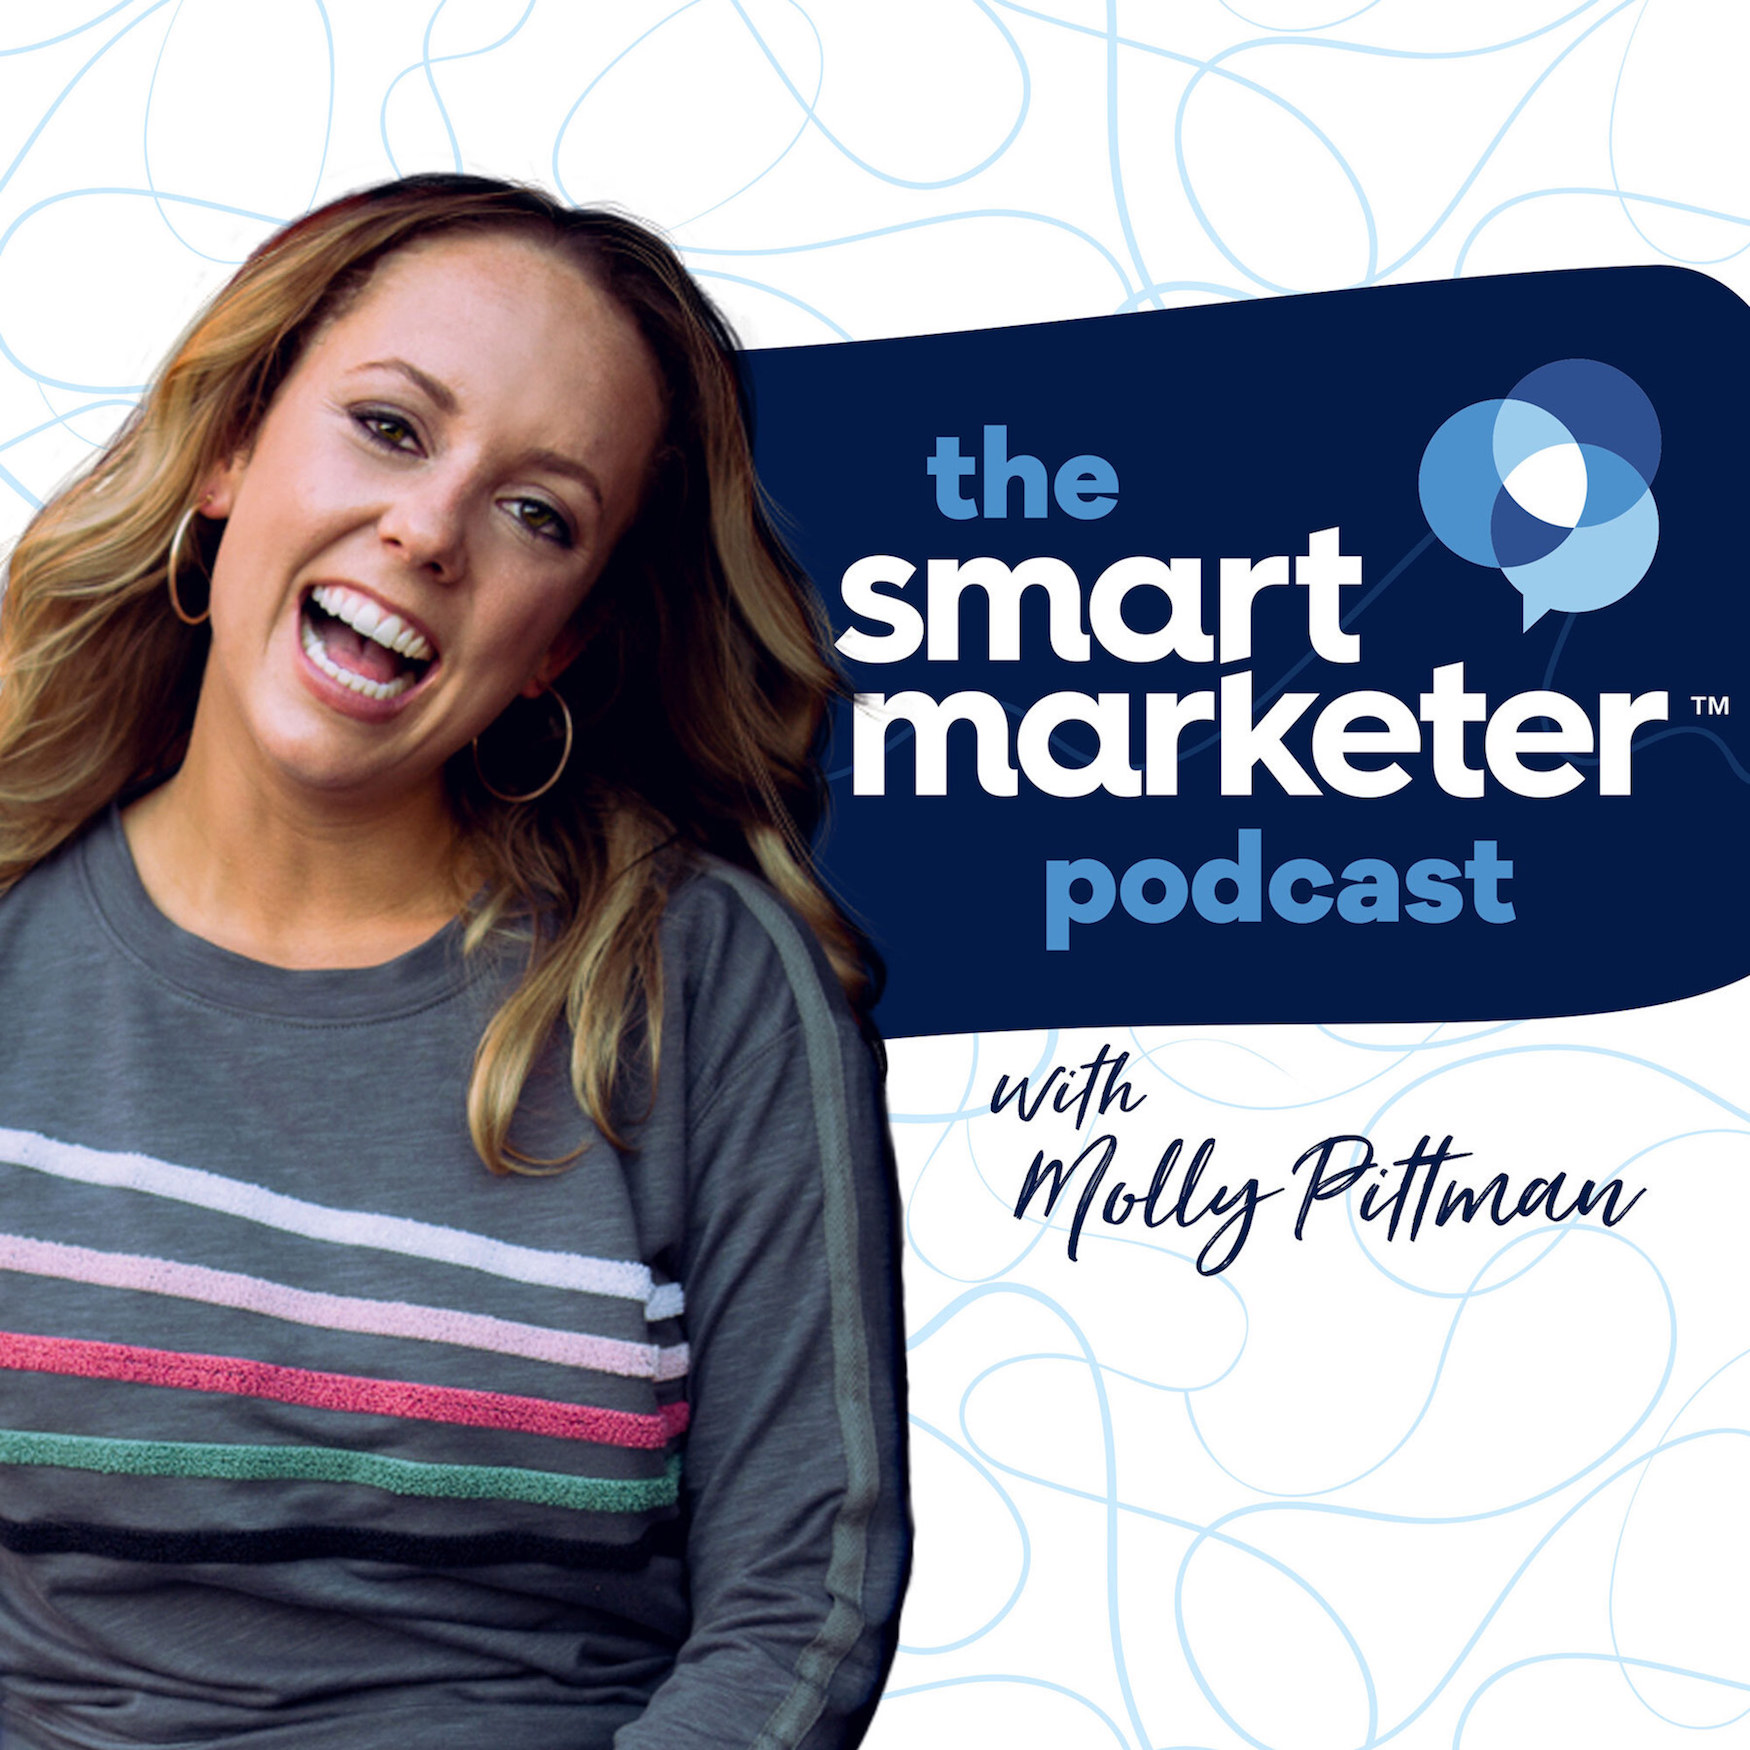 The Smart Marketer Podcast